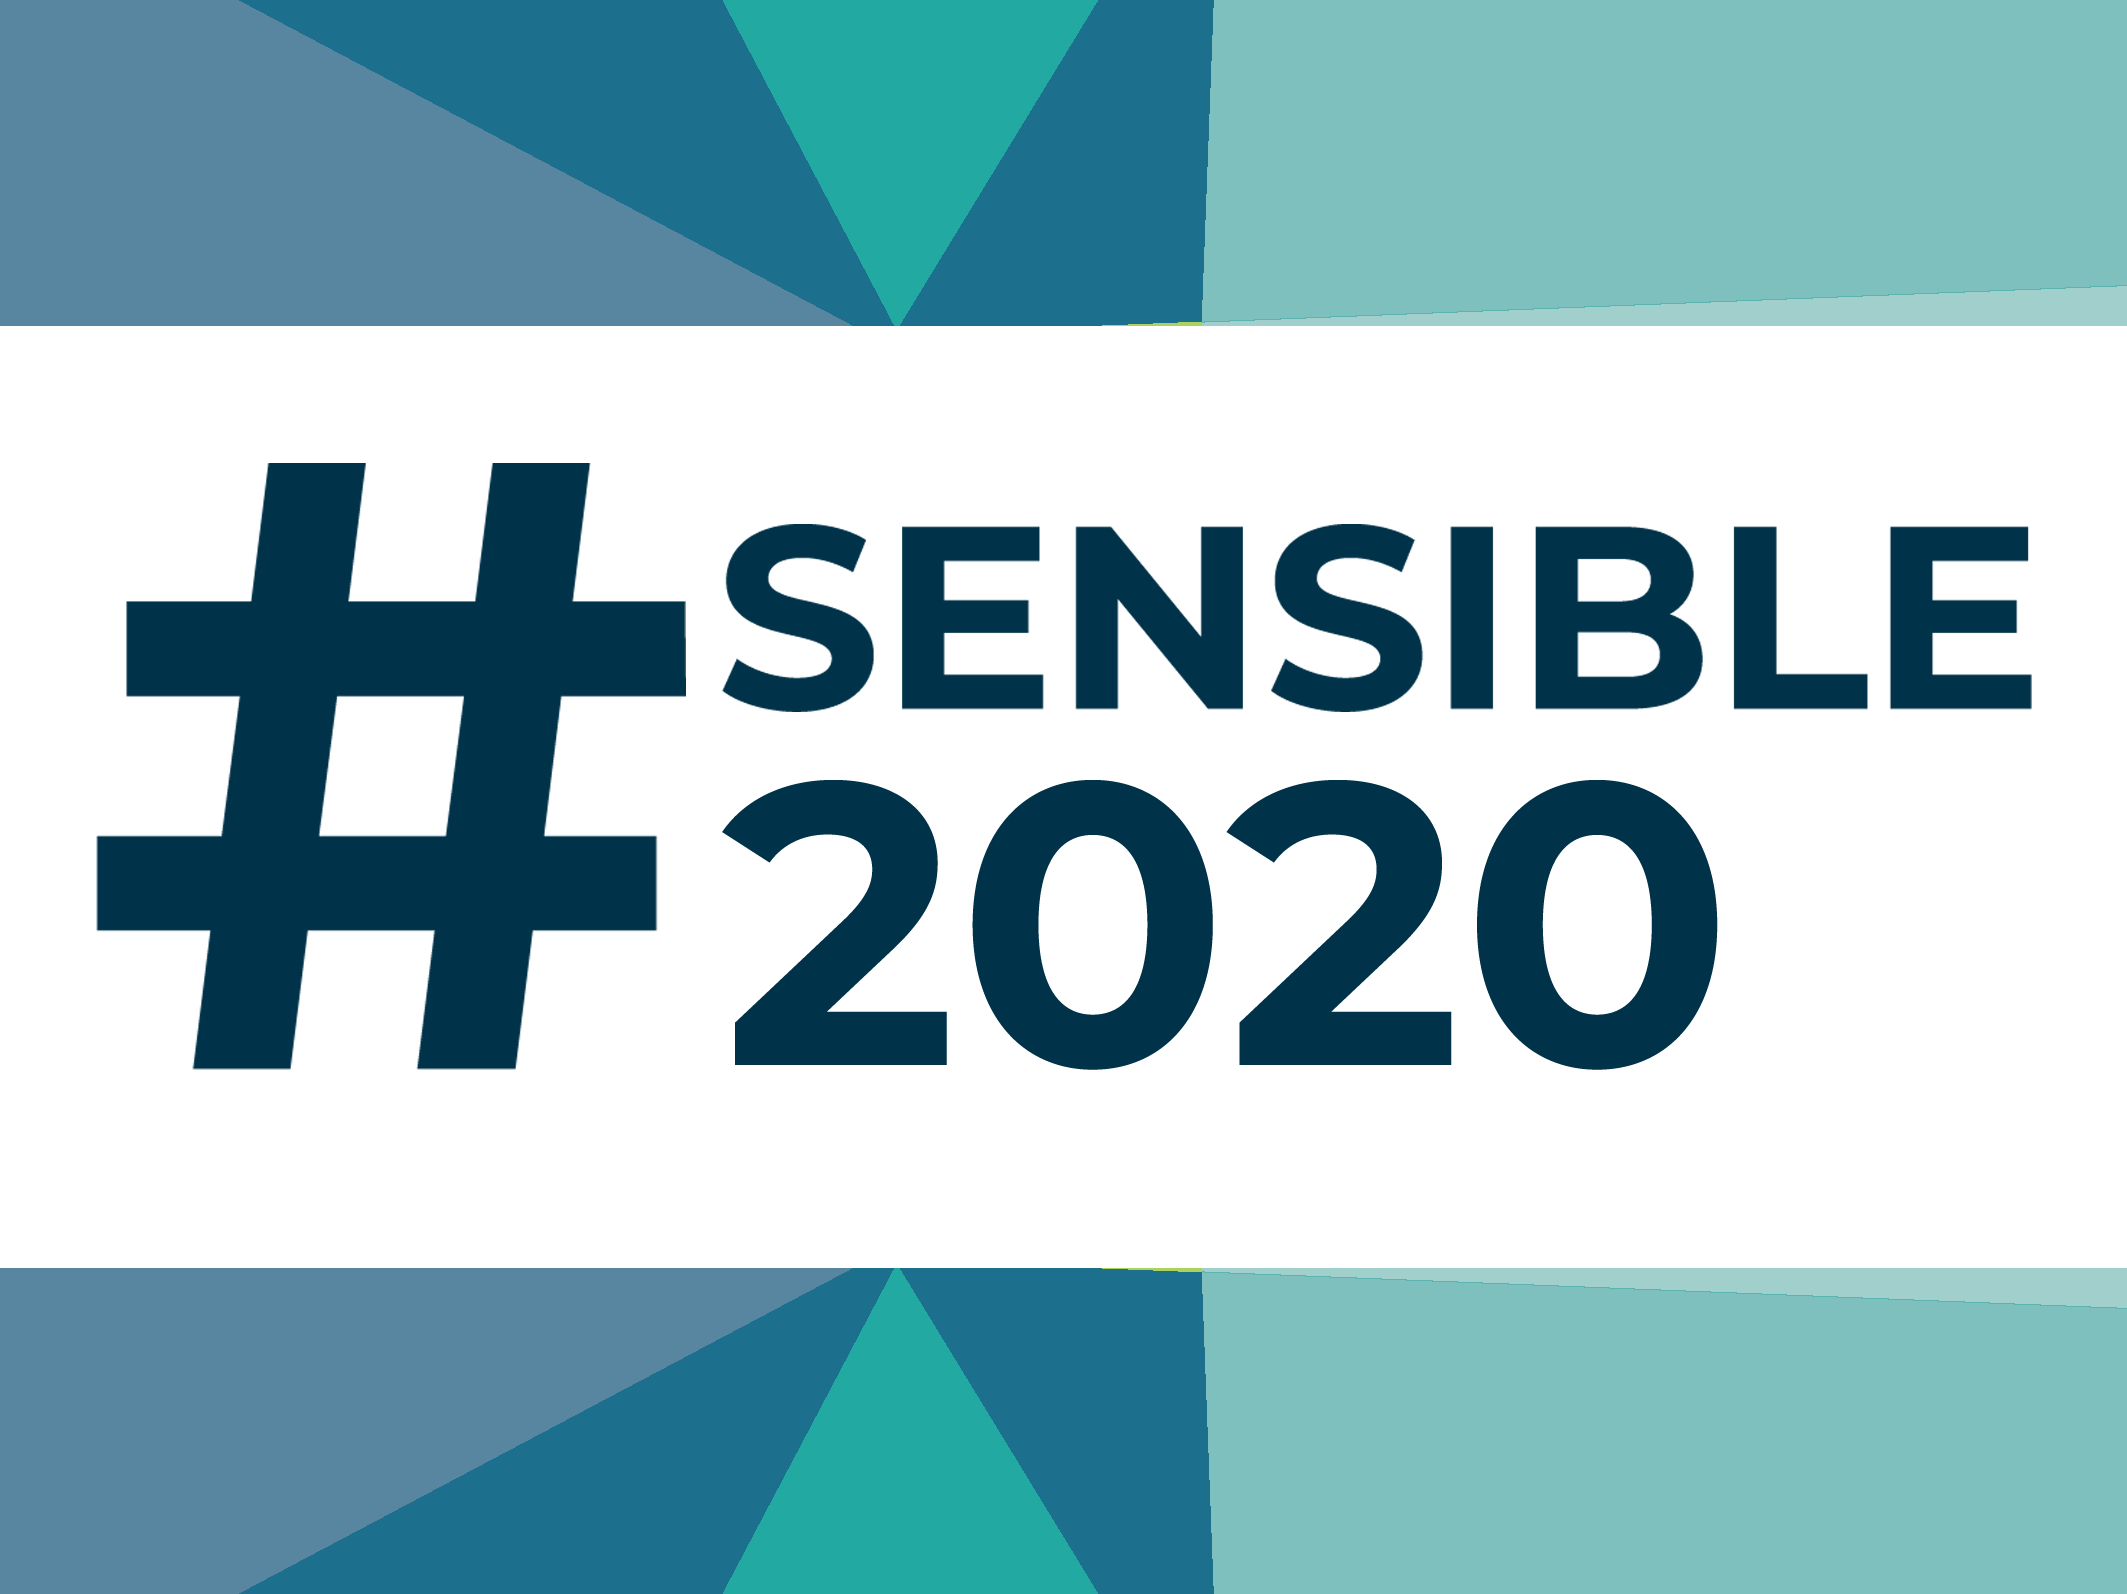 Dark blue text that says #Sensible2020 in front of a blue and teal geometric background